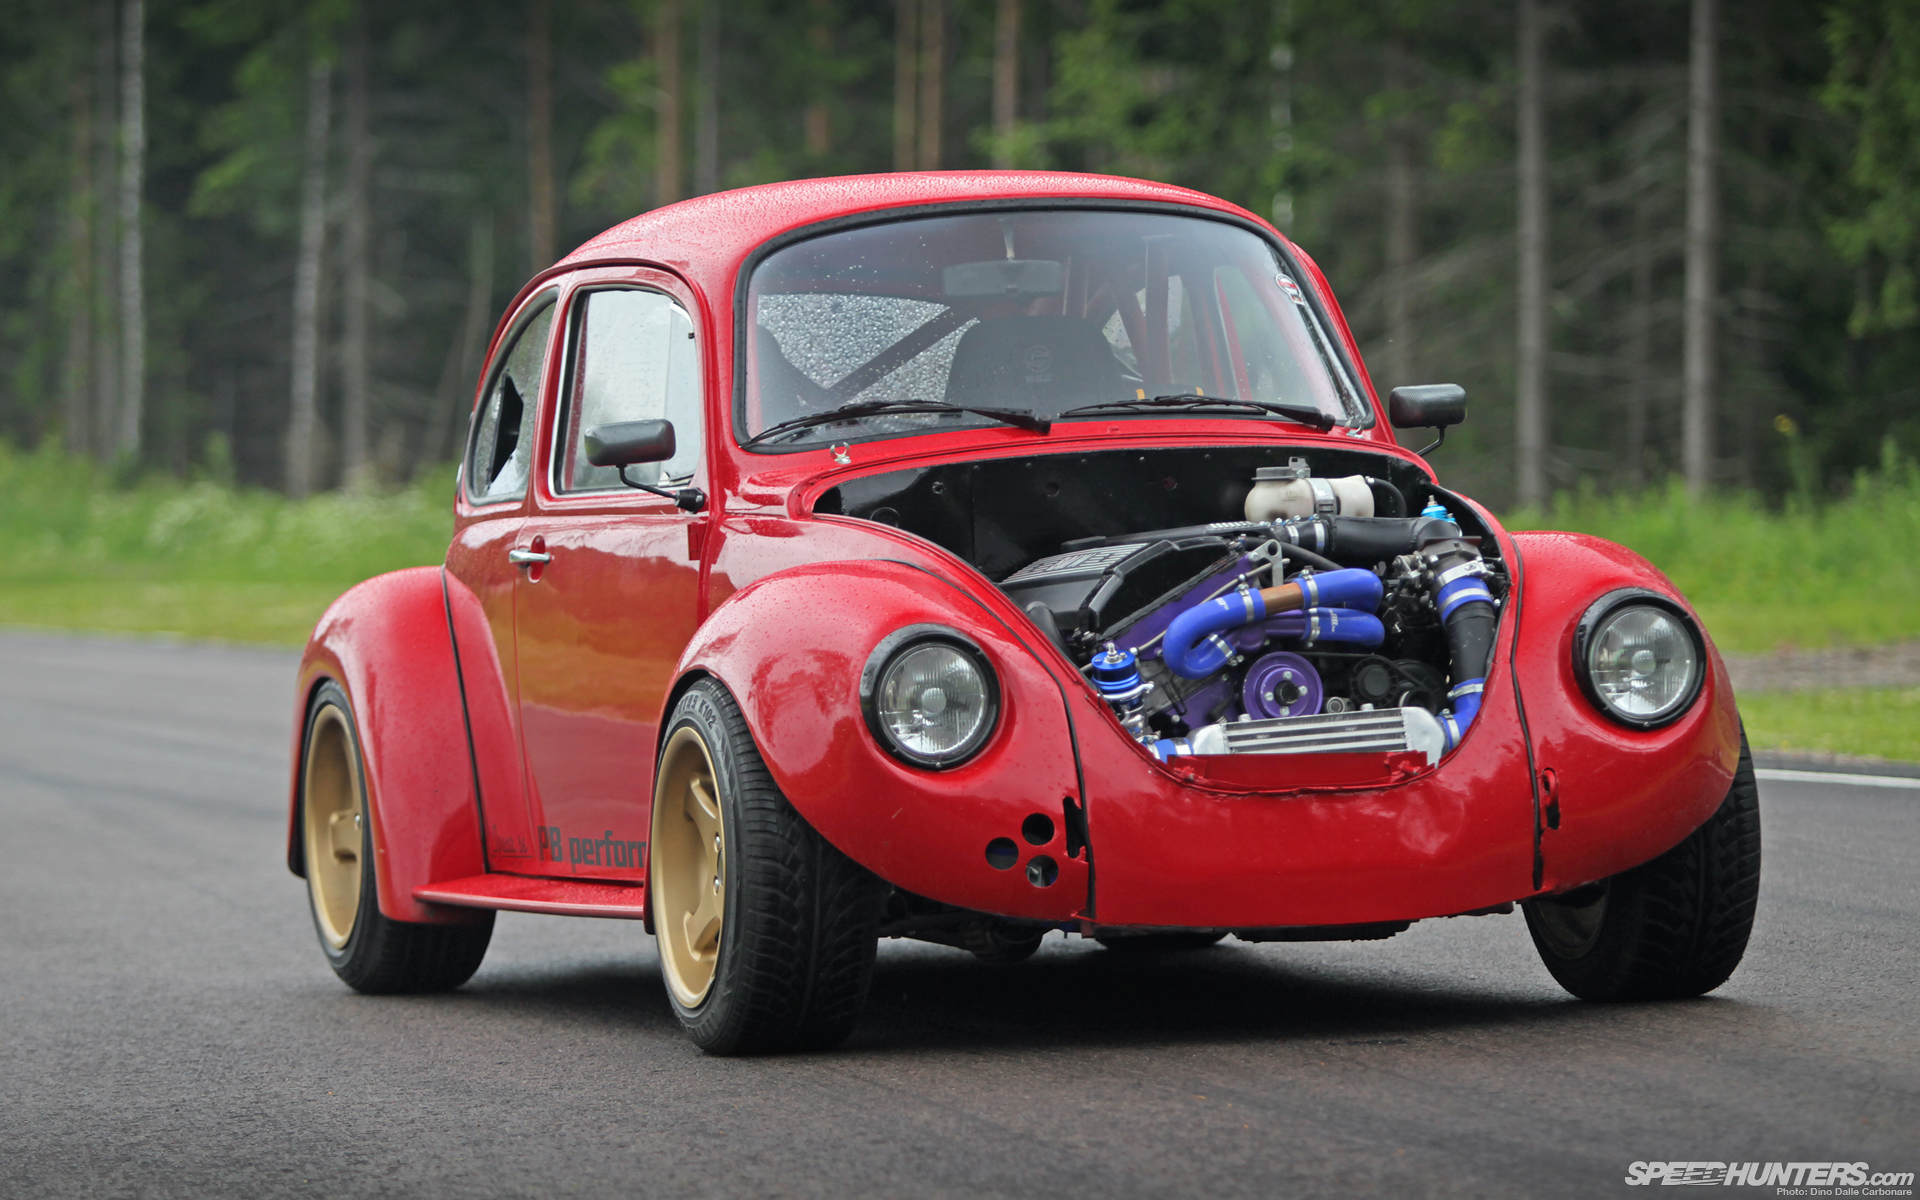 Volkswagen Bug tuning classic engine engines f wallpaper background 1920x1200